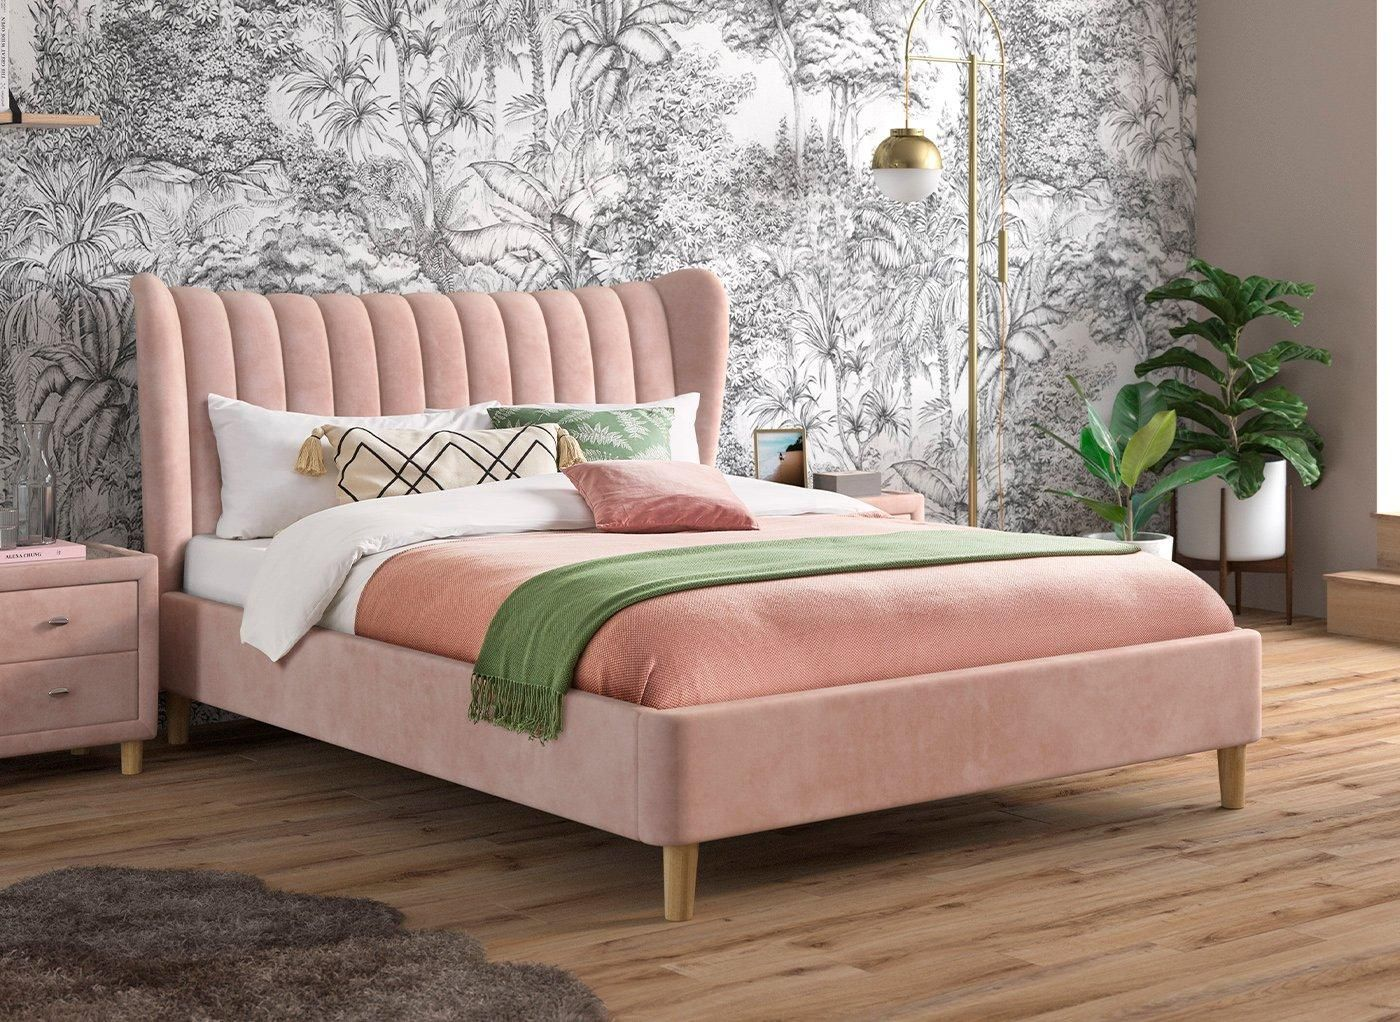 Knox Upholstered Bed Frame 4 6 Double Pink In 2020 Upholstered